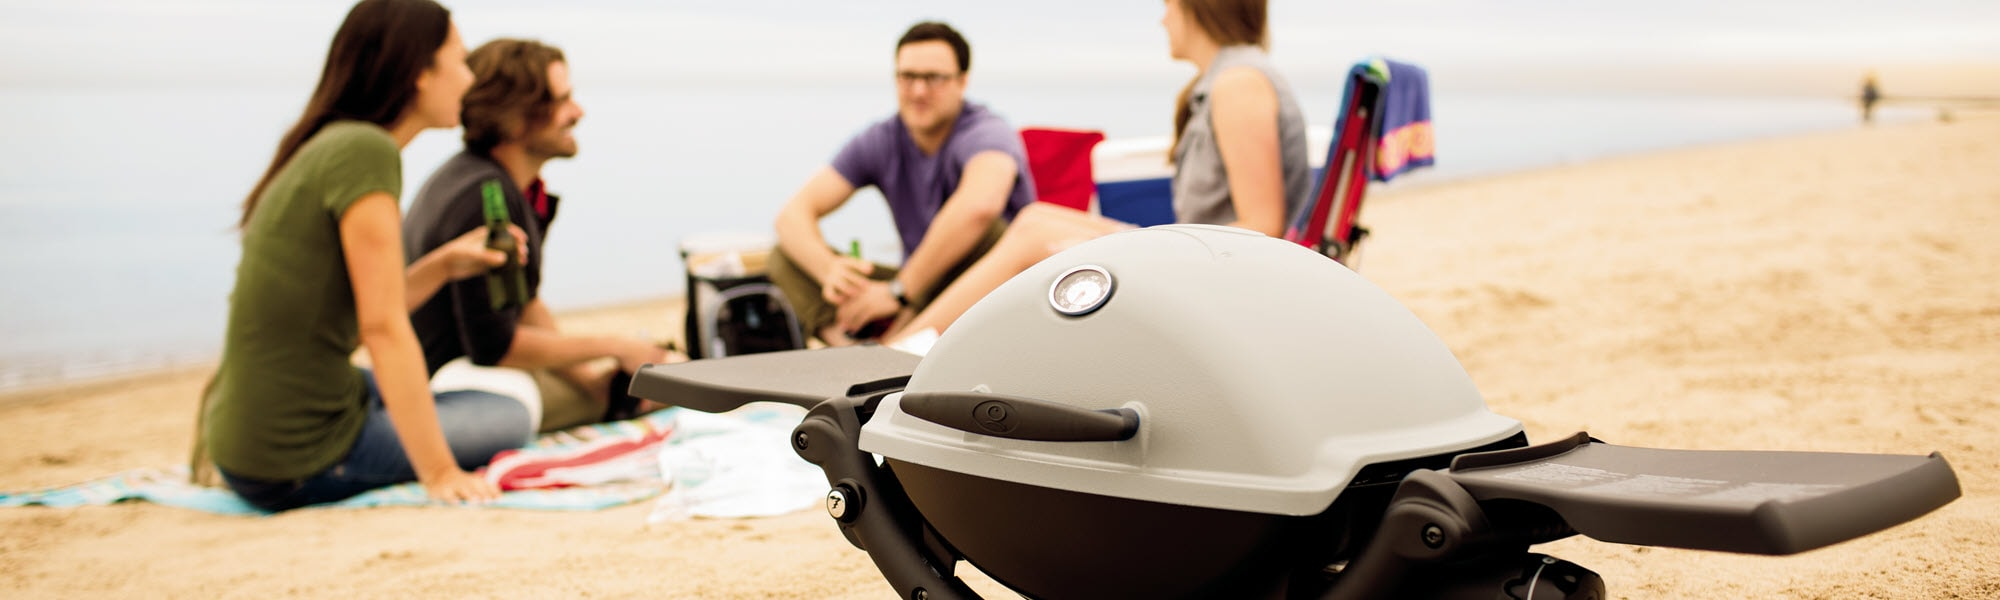 Weber Baby Q BBQ - The Outdoor Chef